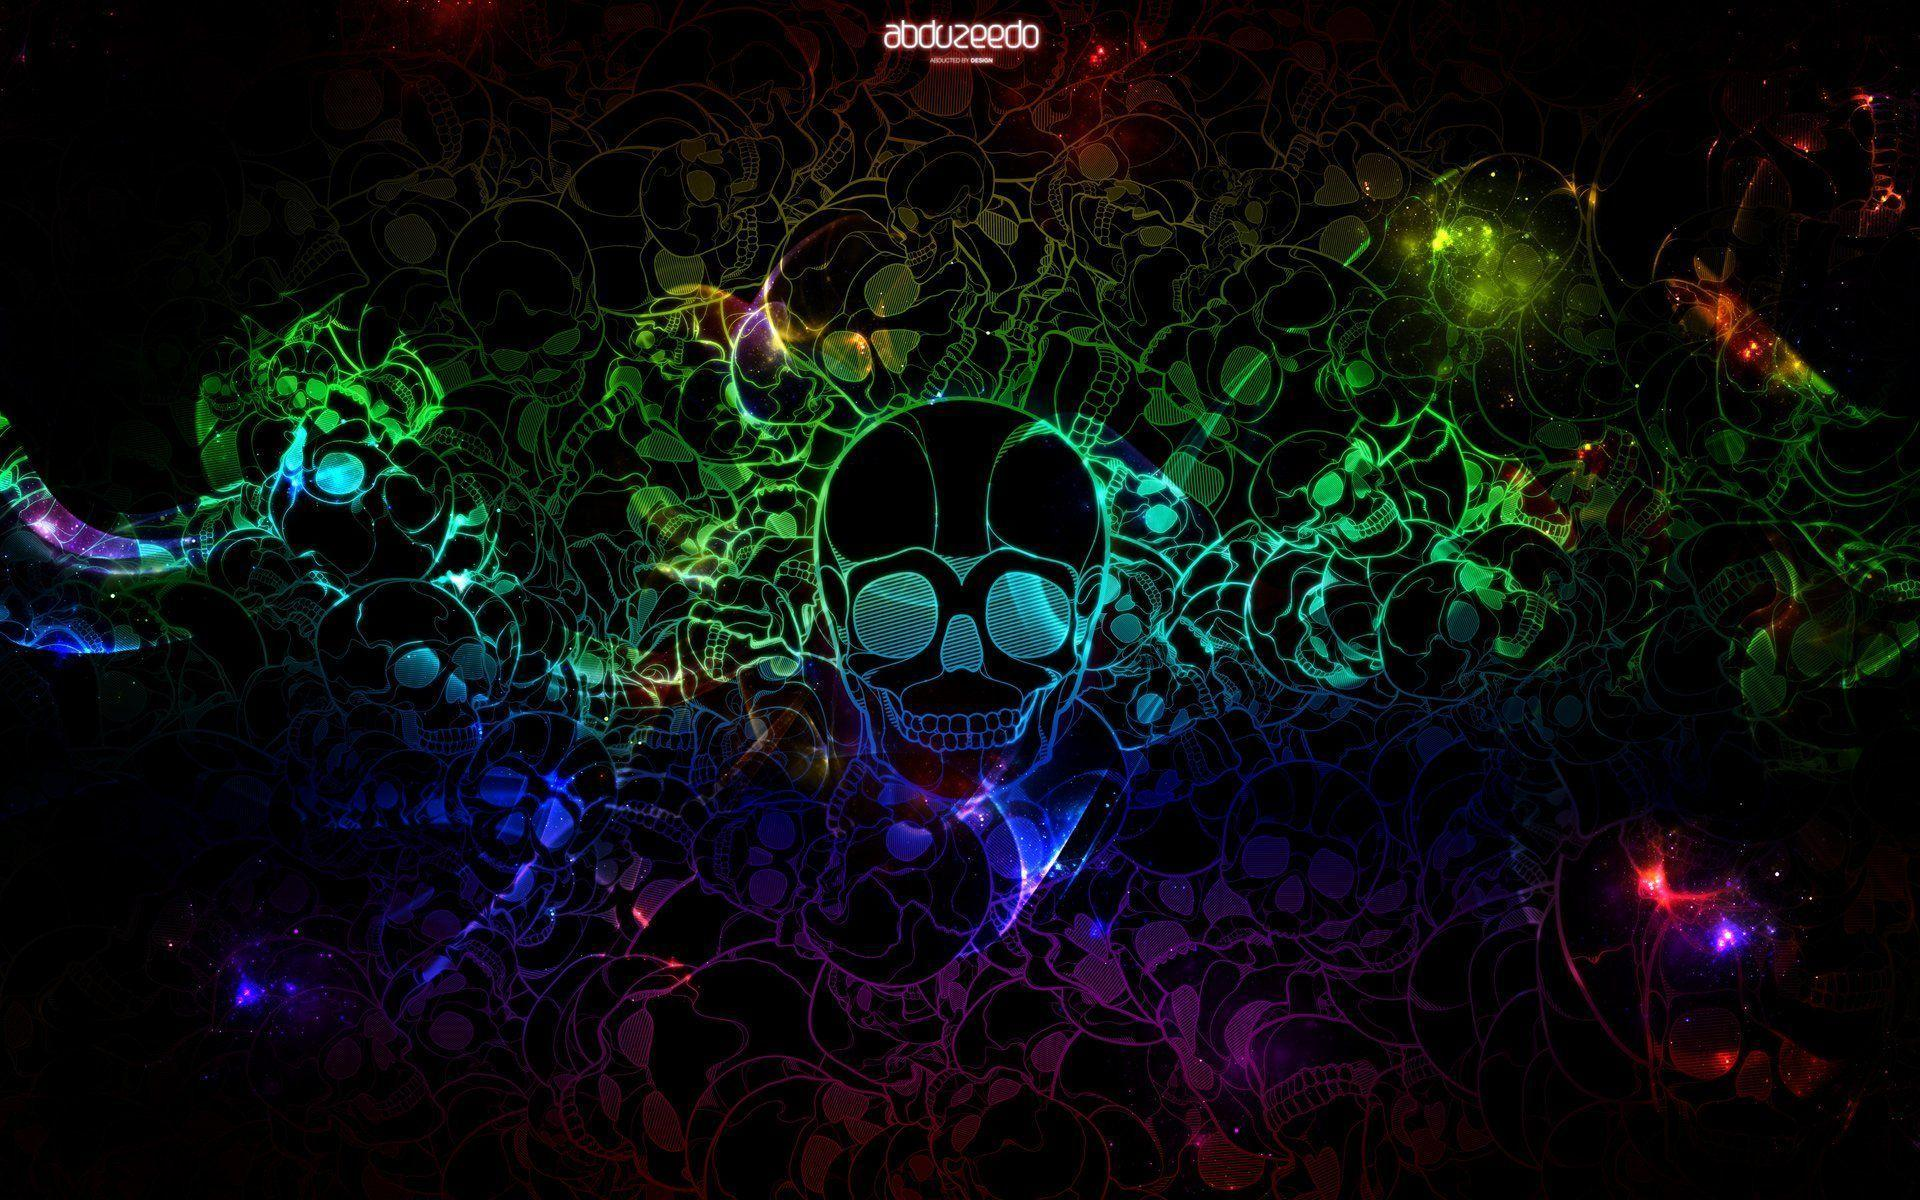 Good Wallpaper High Resolution Skull - XydAvwt  Pic_139068.jpg